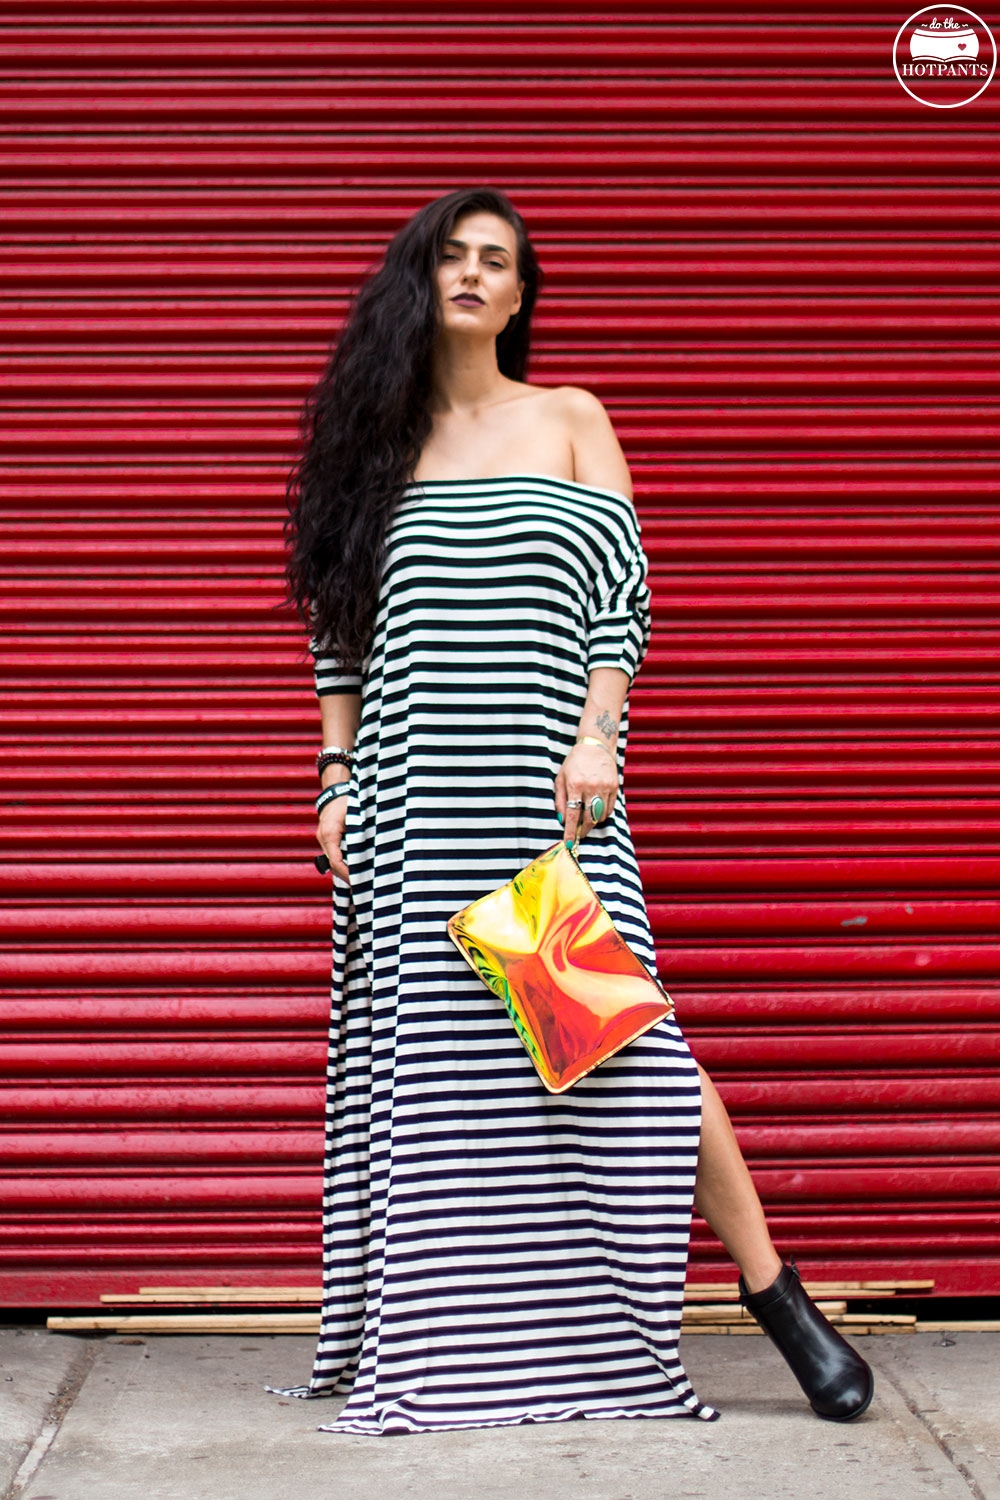 Do The Hotpants Dana Suchow Striped Maxi Dress Babooshka Boutique Curvy Woman Off Shoulder Dress IMG_0054